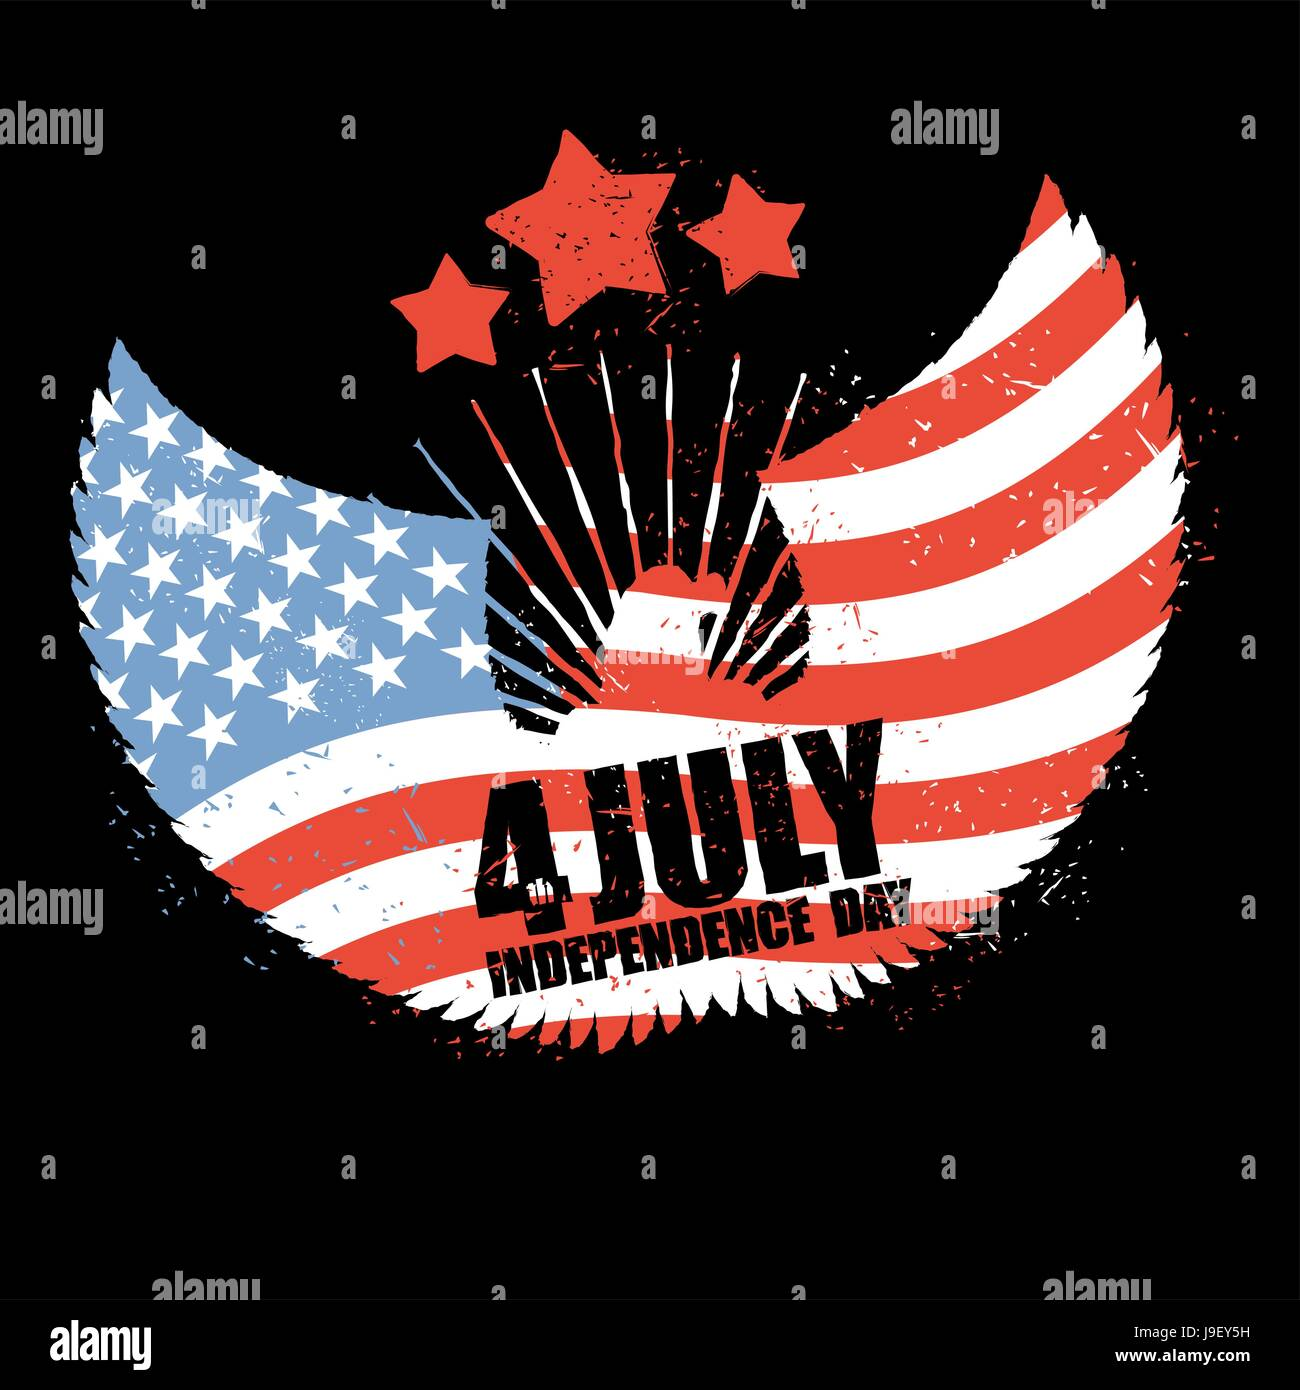 Independence Day America Symbol Of Countrys Eagle With Wings And